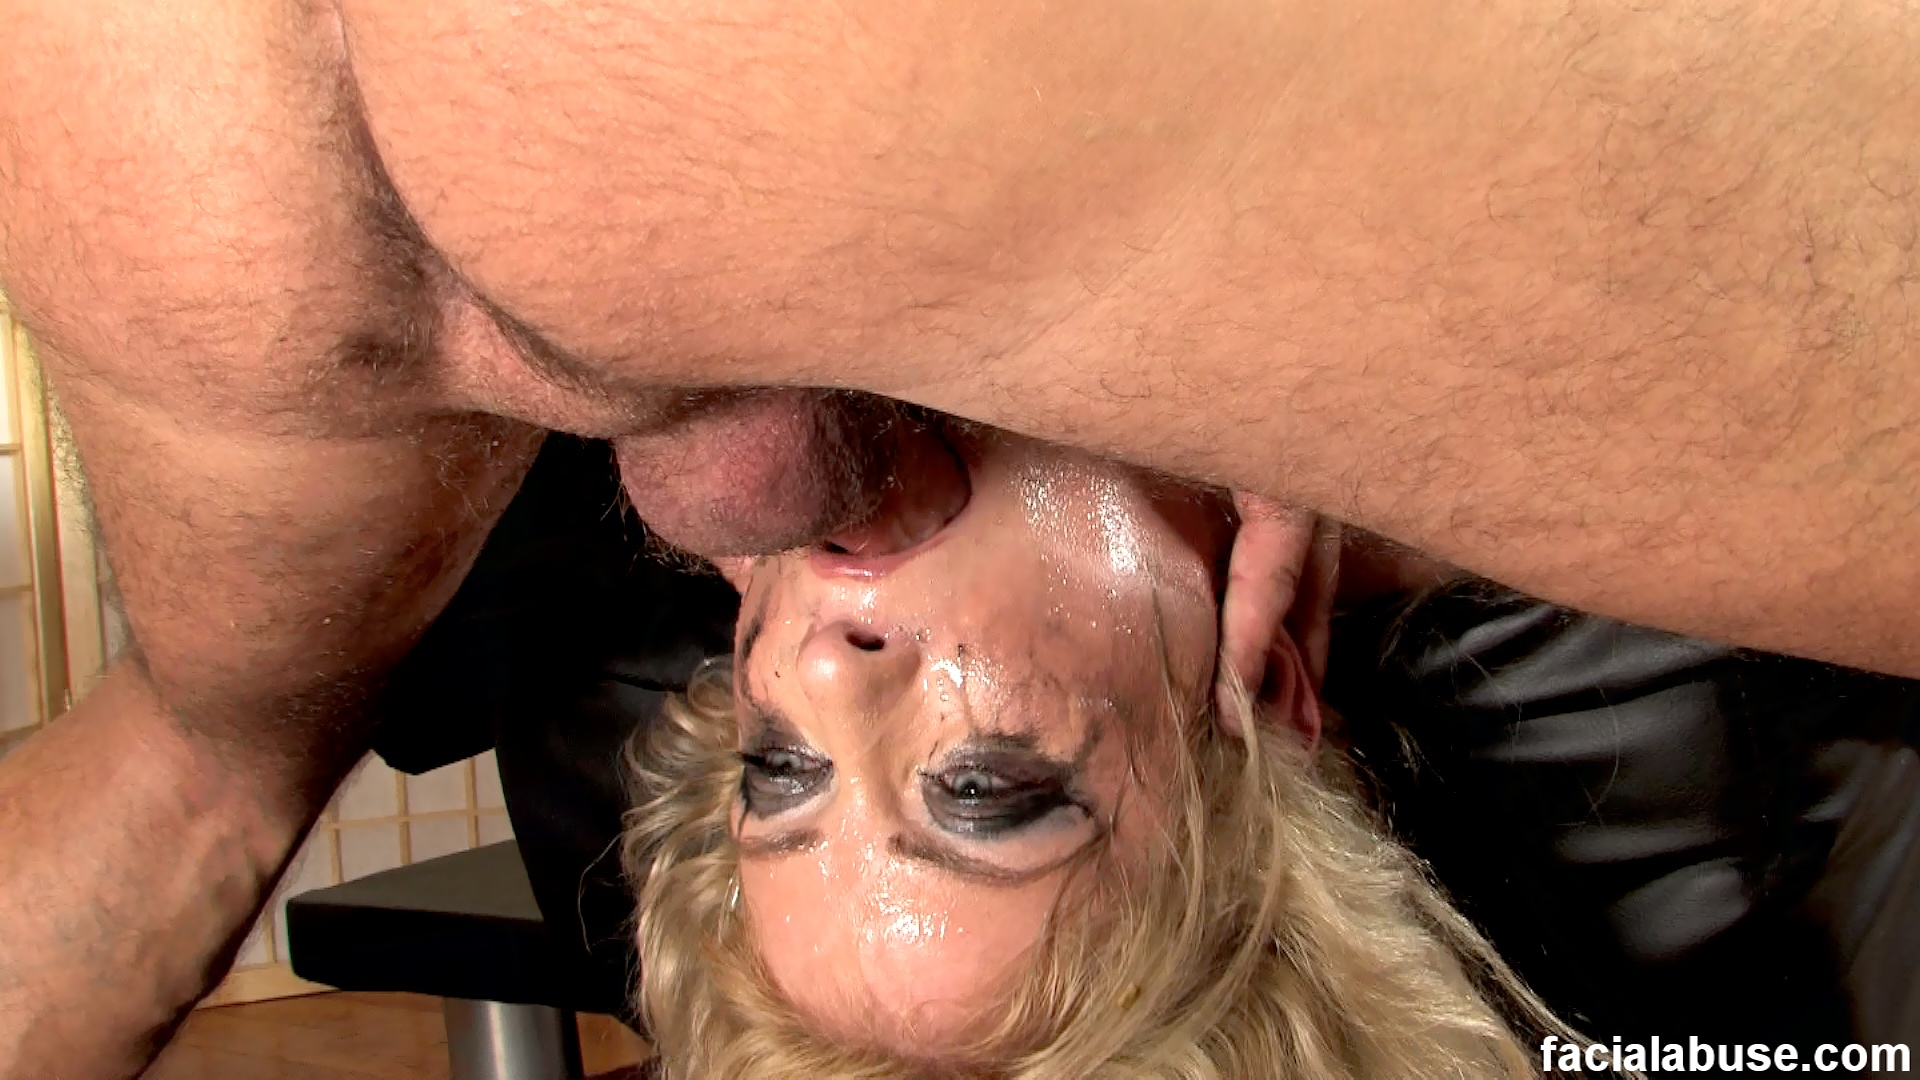 Big Tits Milf Face Fucked, Worships Balls, Licks Asshole, Pukes Gets Spit On